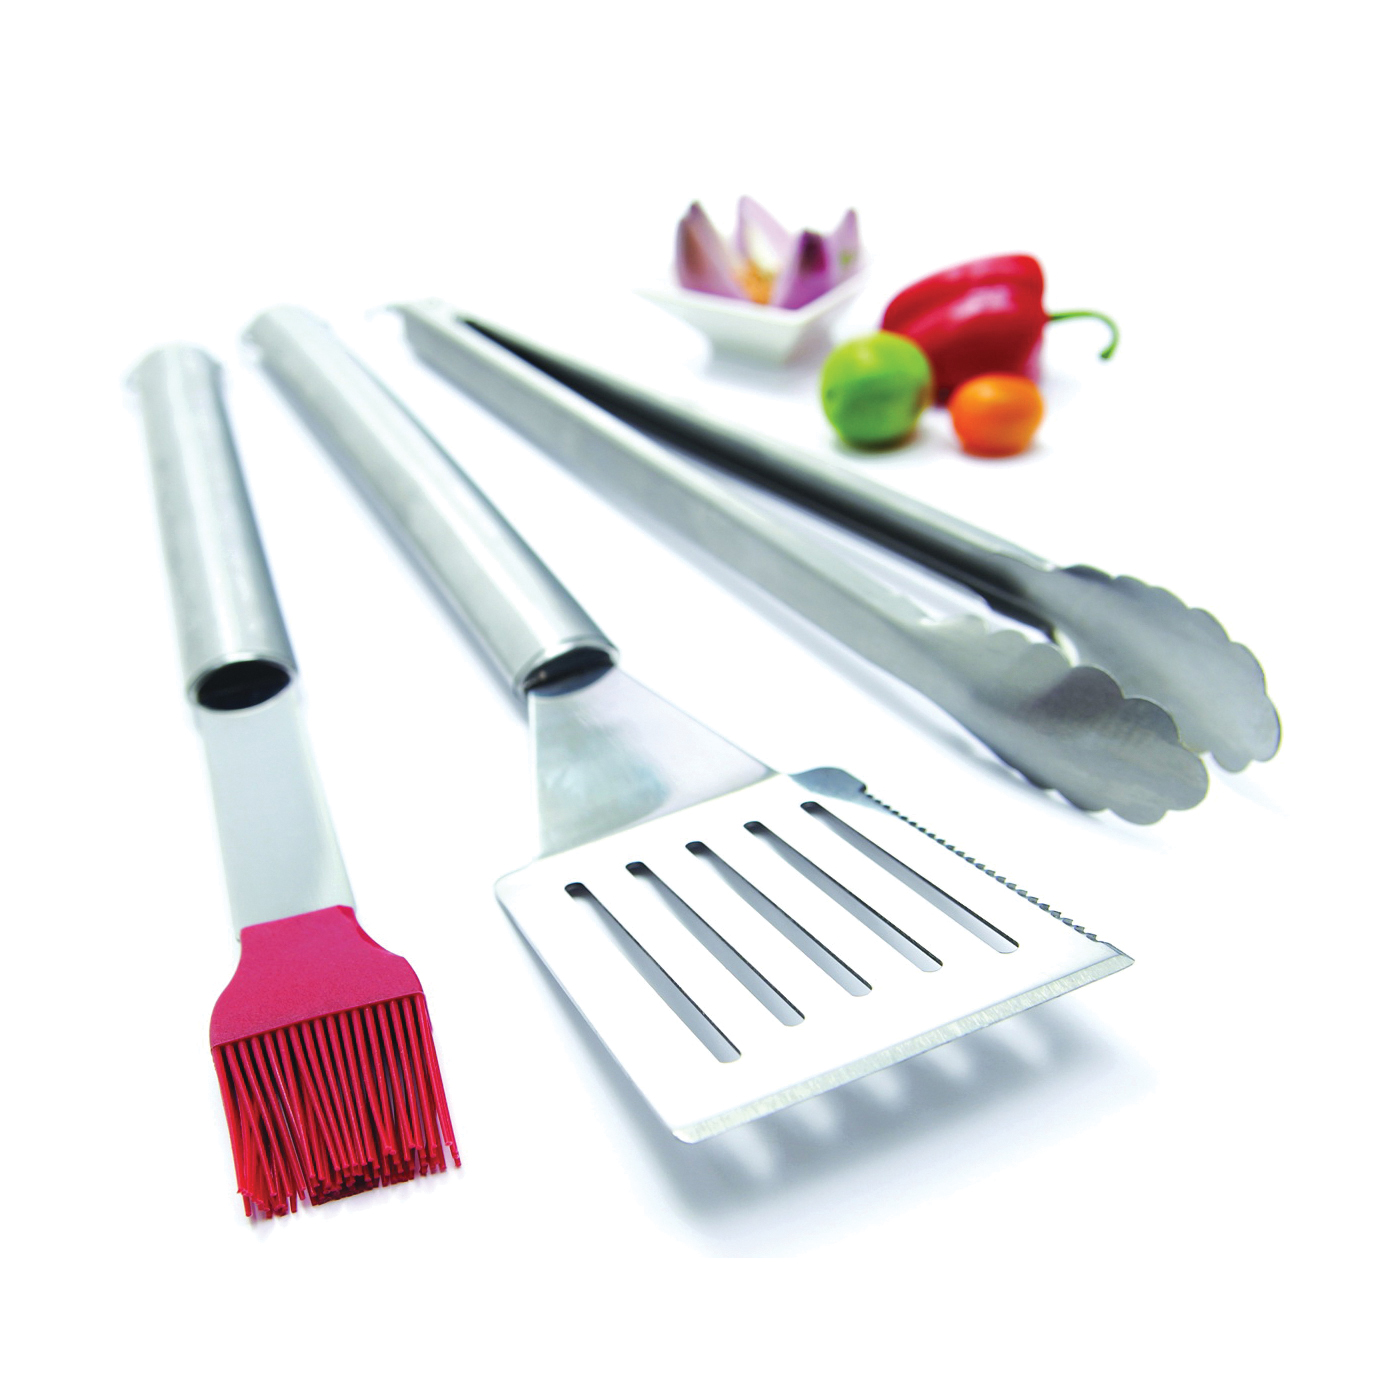 Picture of GrillPro 40035 Tool Set, Stainless Steel, Tubular Handle